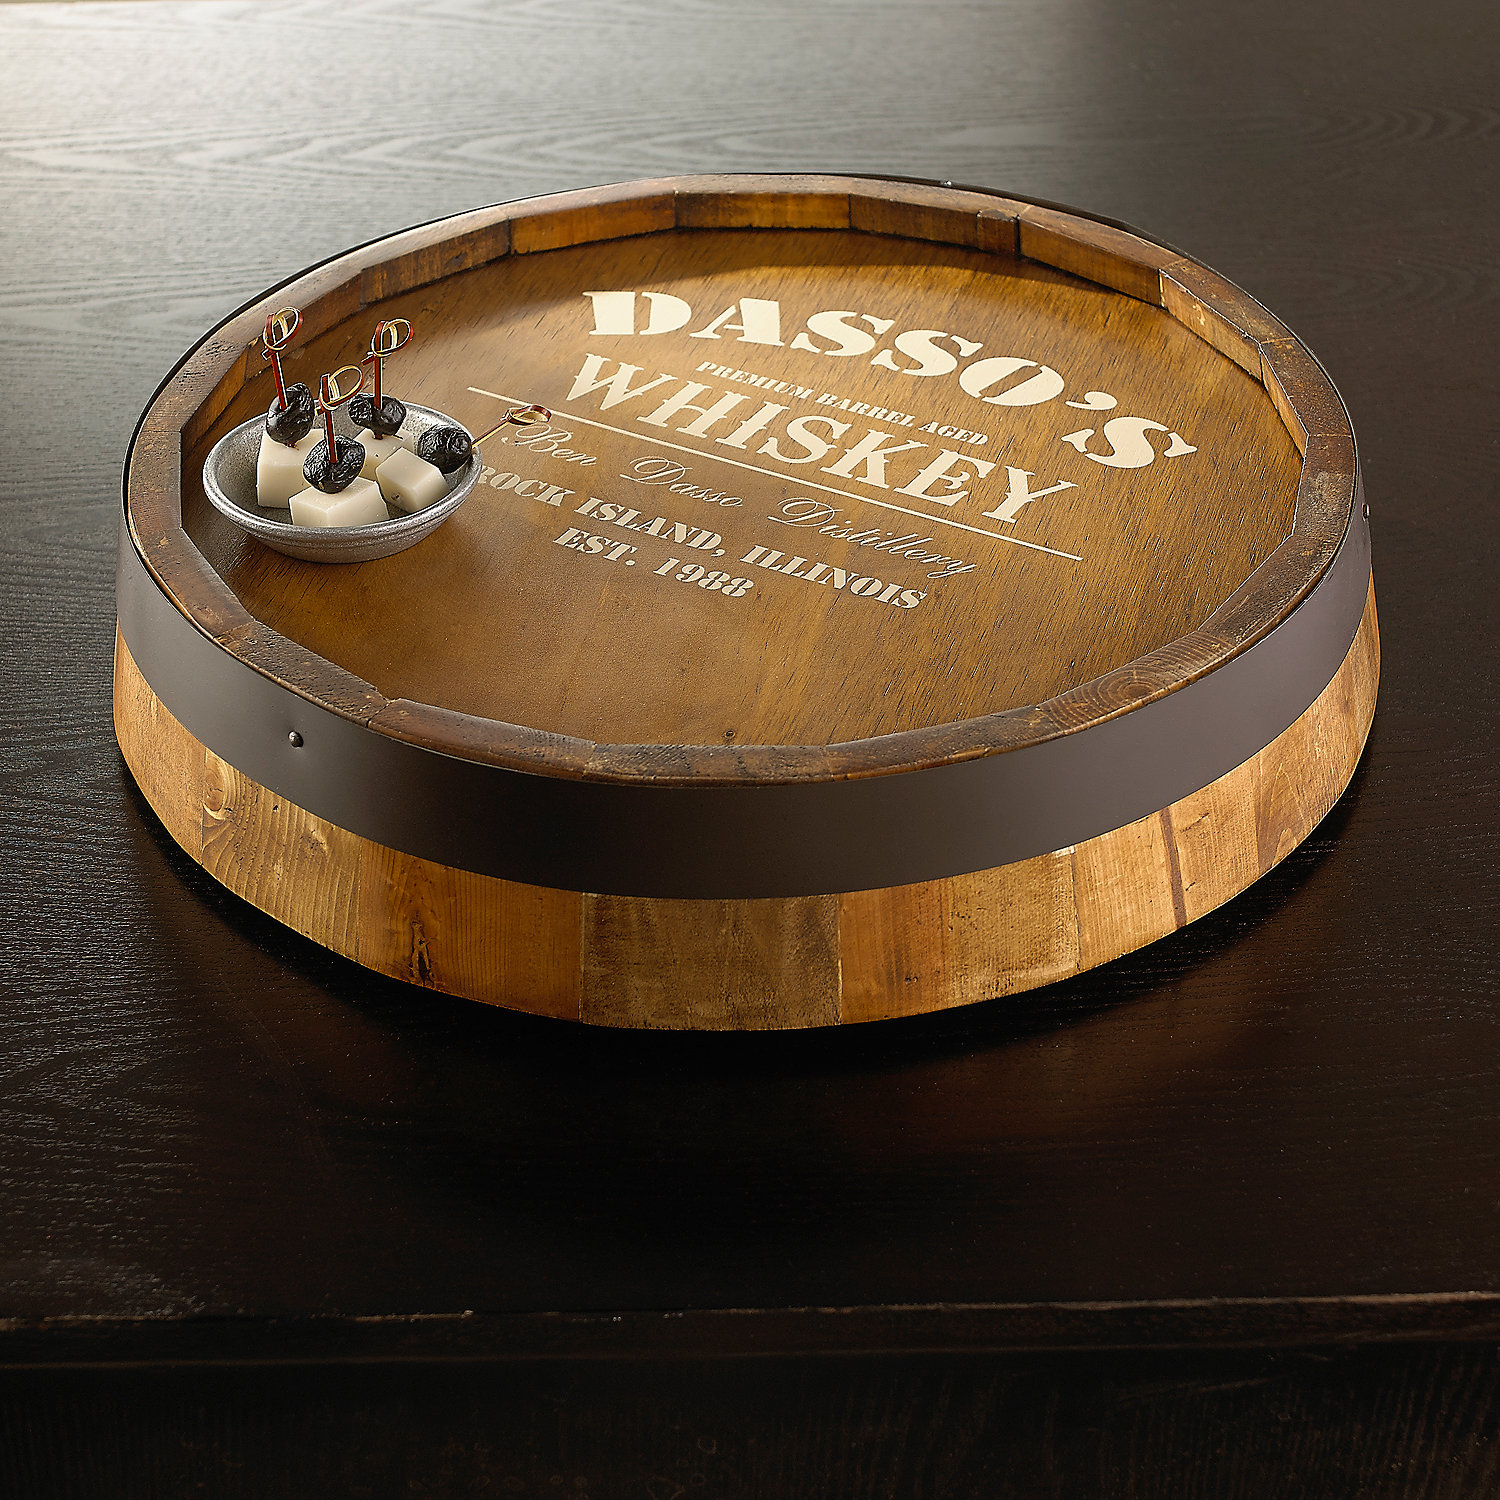 Interesting wine barrel lazy susan for furniture accessories ideas with personalized wine barrel lazy susan